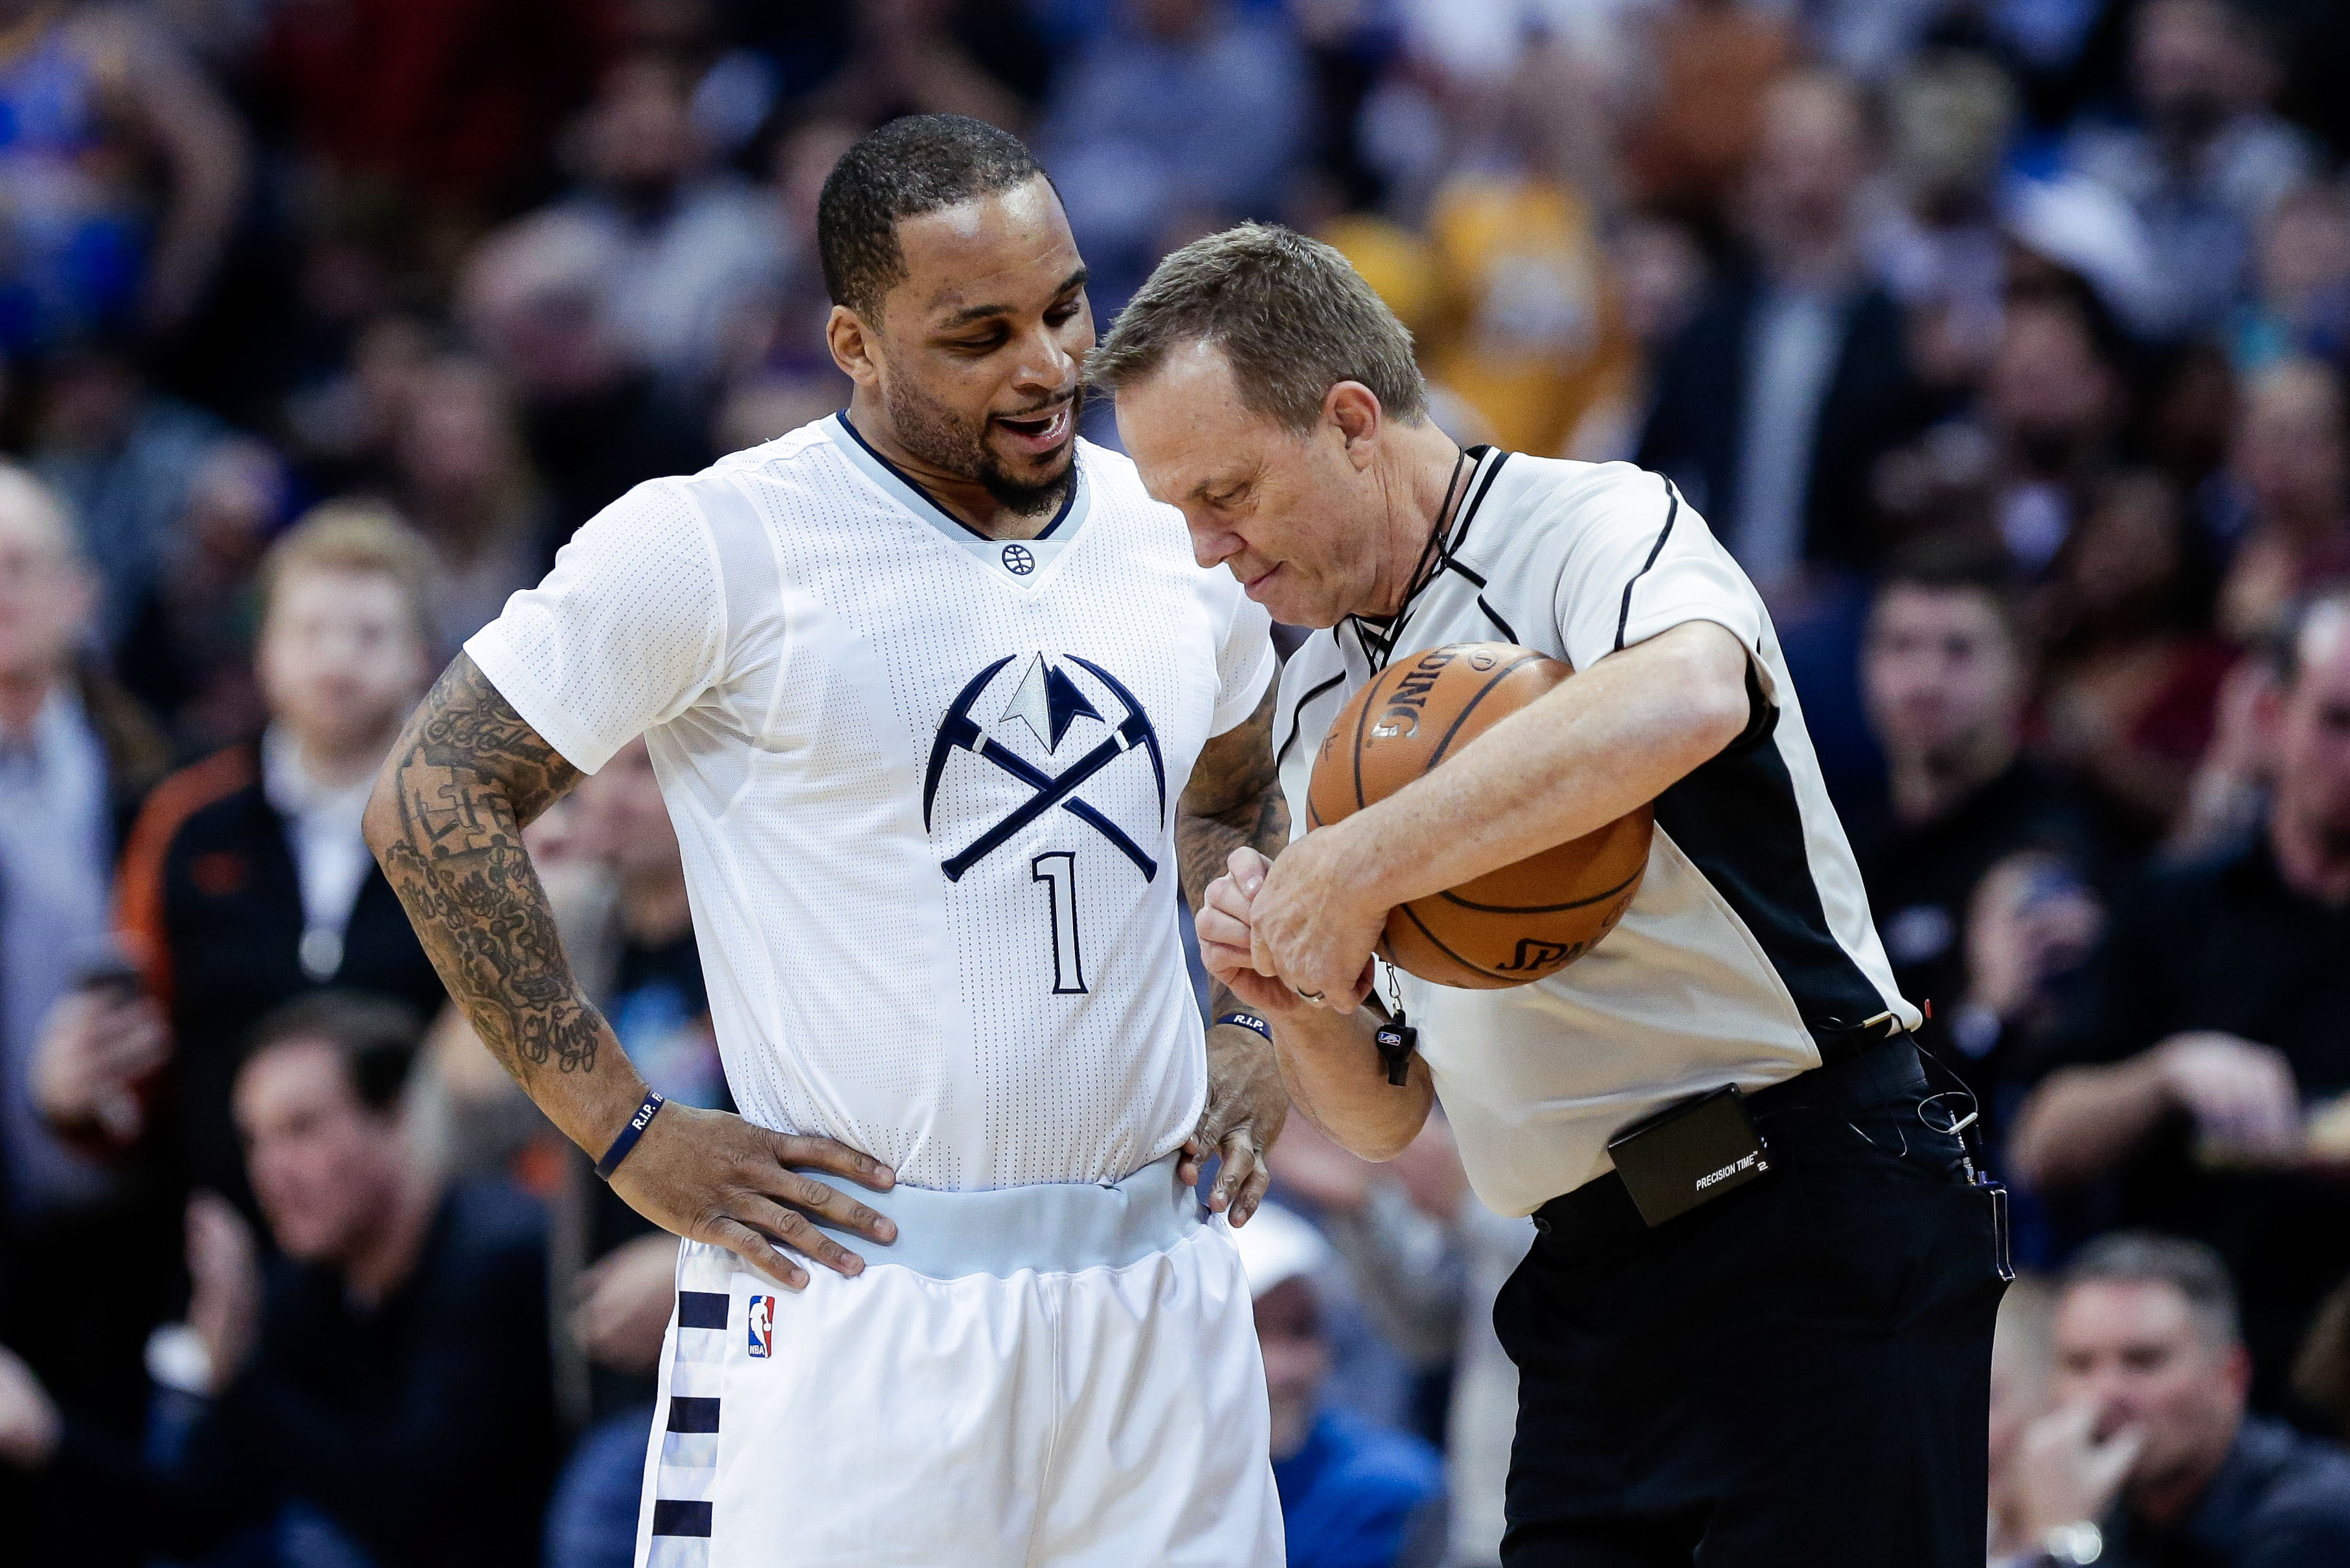 Jameer Nelson was a controversial player this season for fans